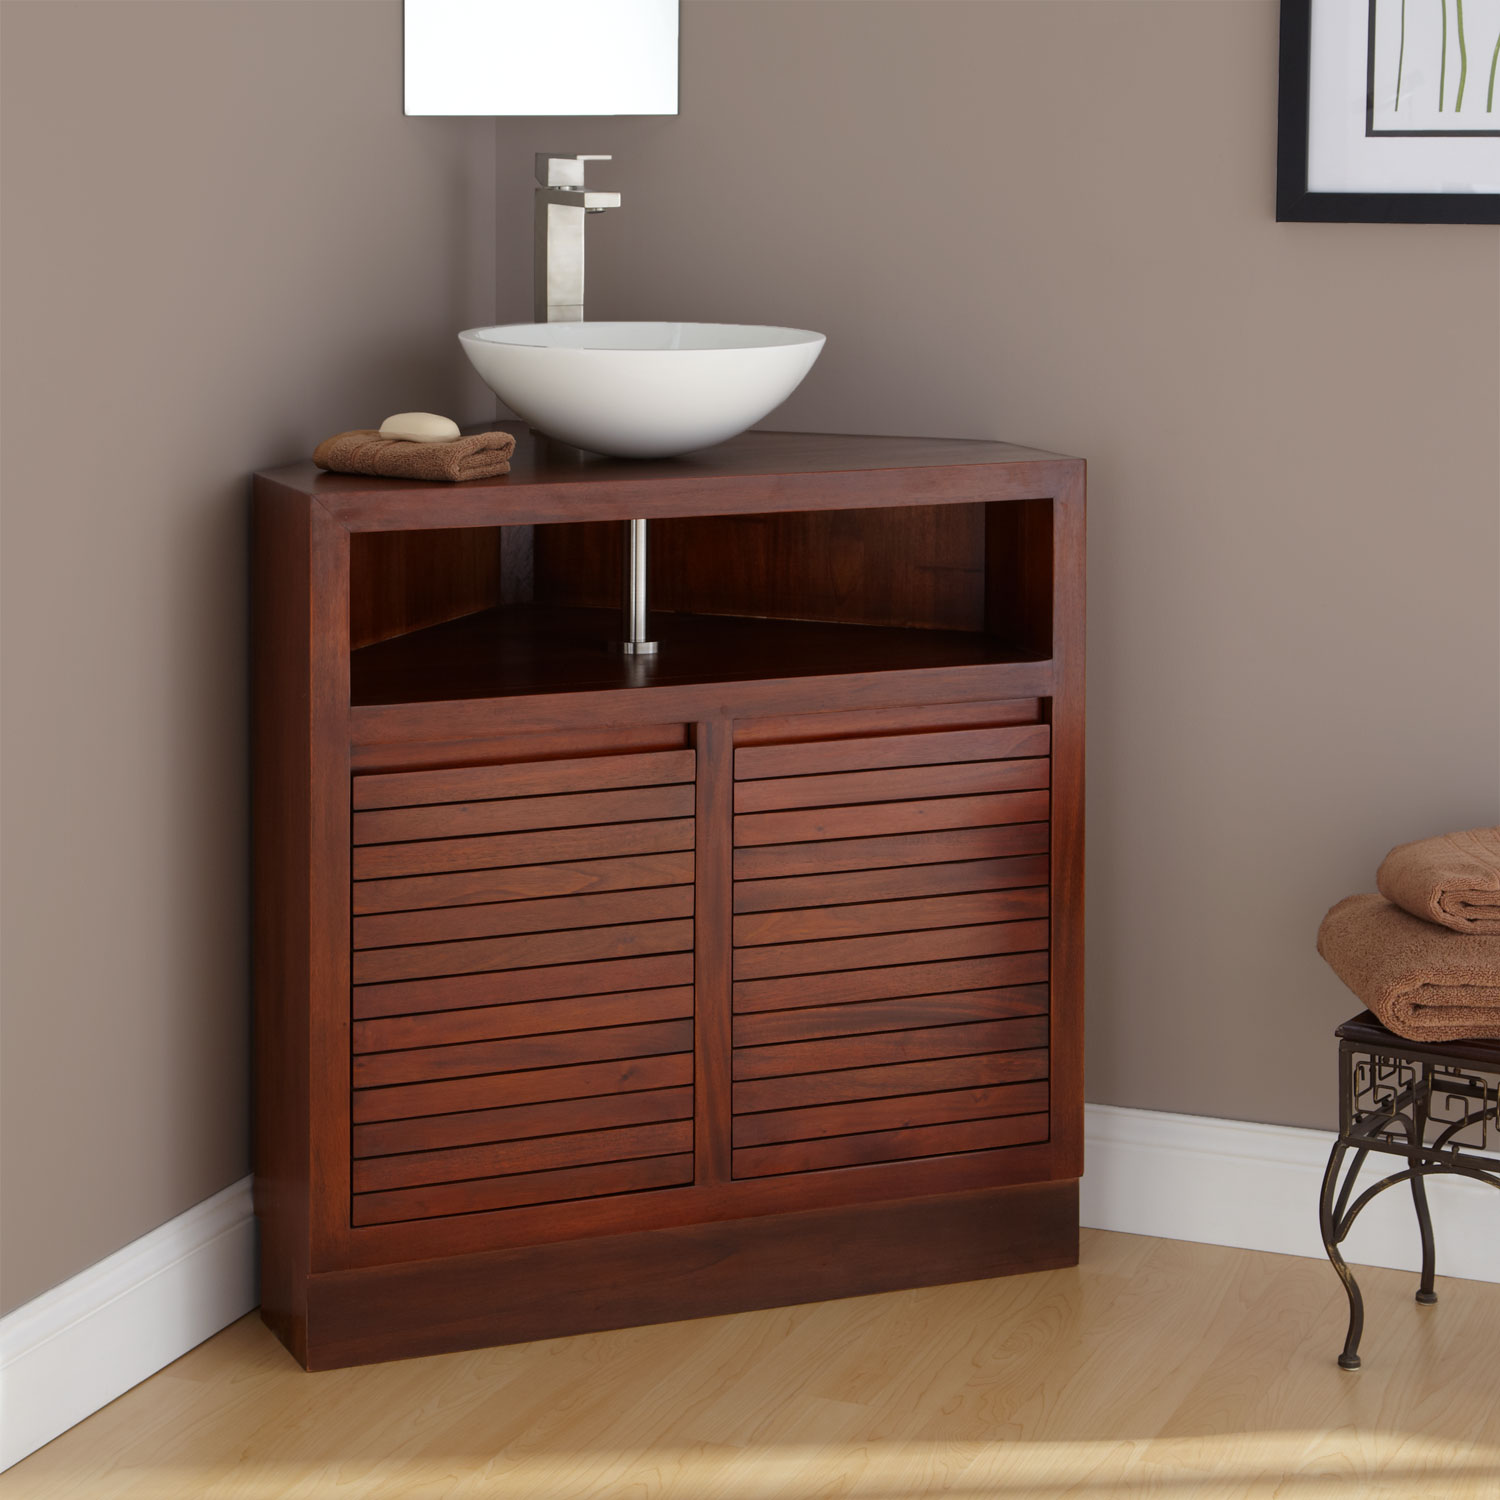 Corner Vanity Set – Solution for Small Space